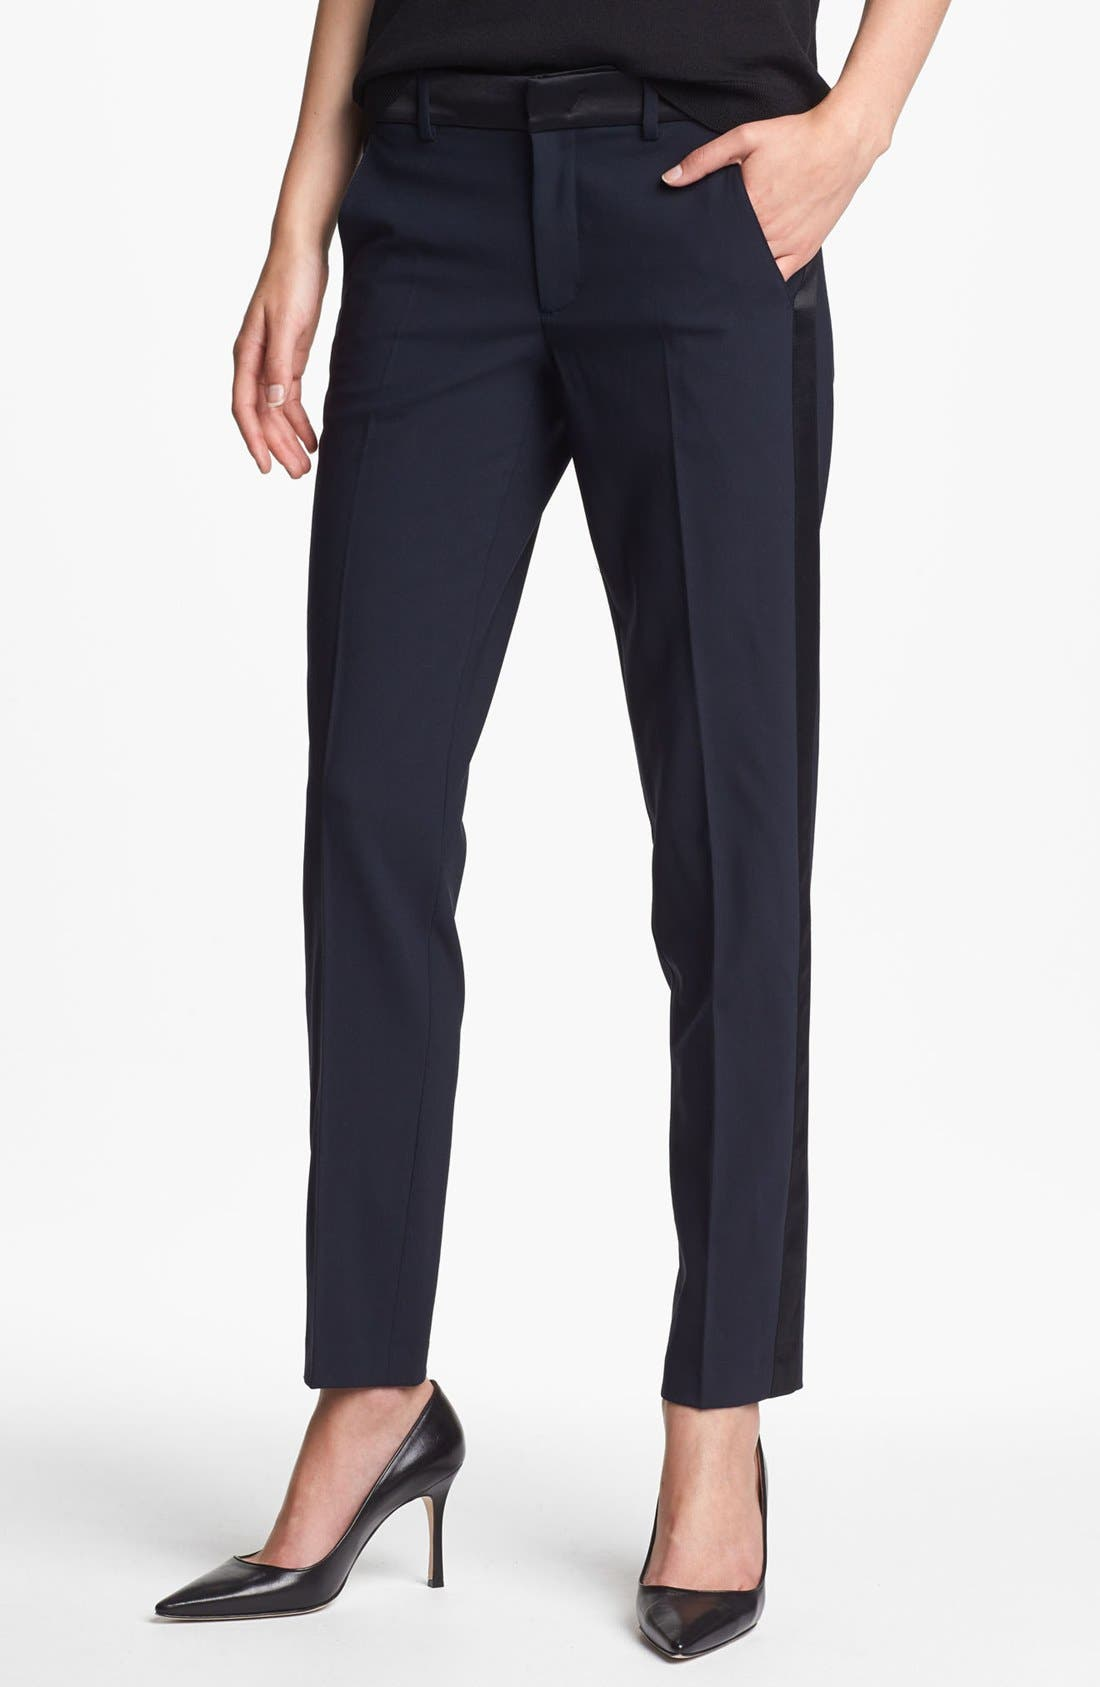 Alternate Image 1 Selected - Vince 'Strapping' Stretch Wool Tuxedo Pants